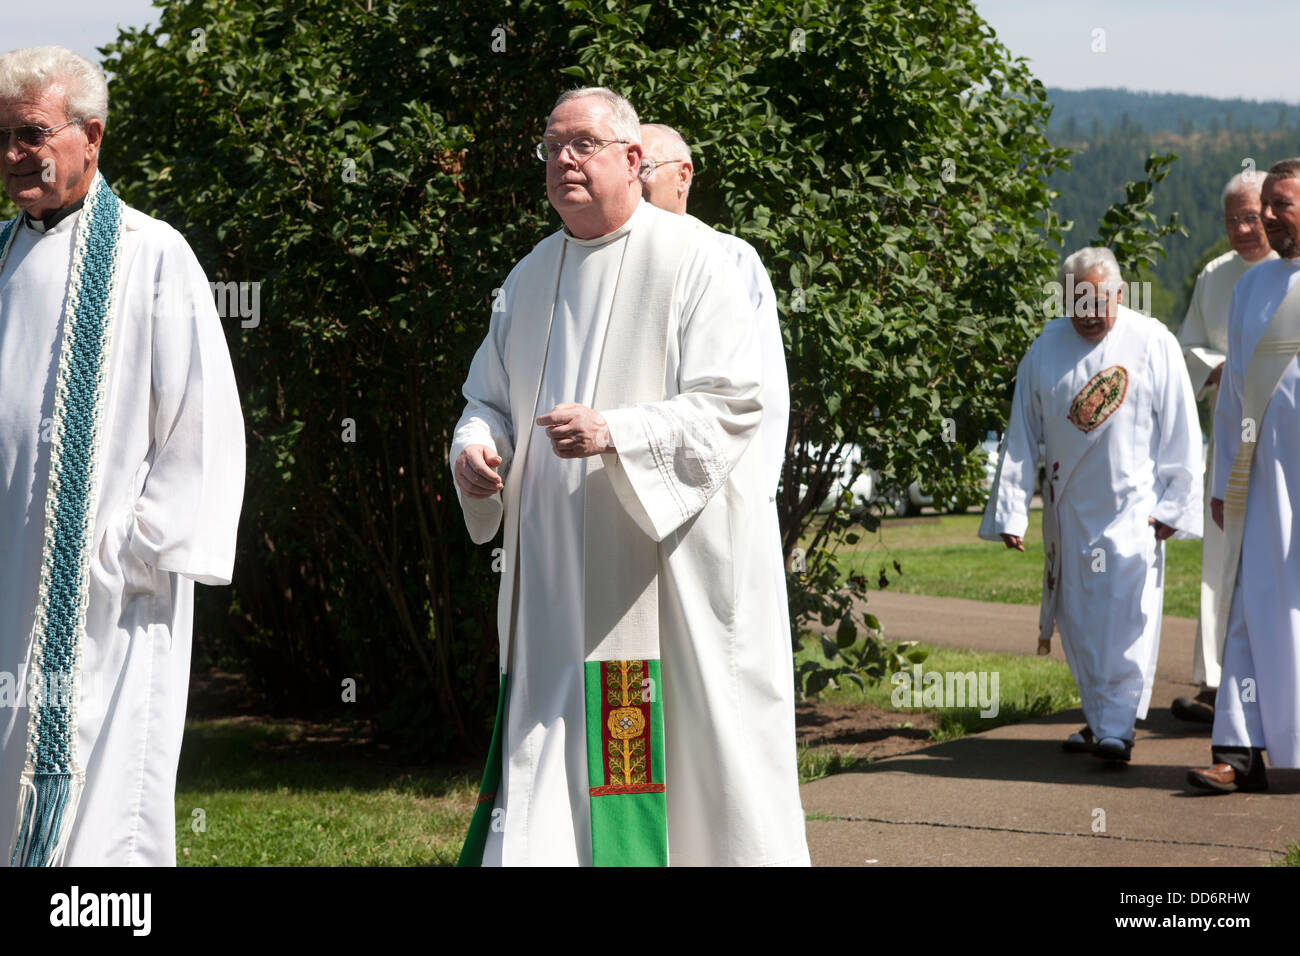 Jesuit Priests walk to the start of the feast of assumption at Cataldo, Idaho on August 15, 2013. - Stock Image